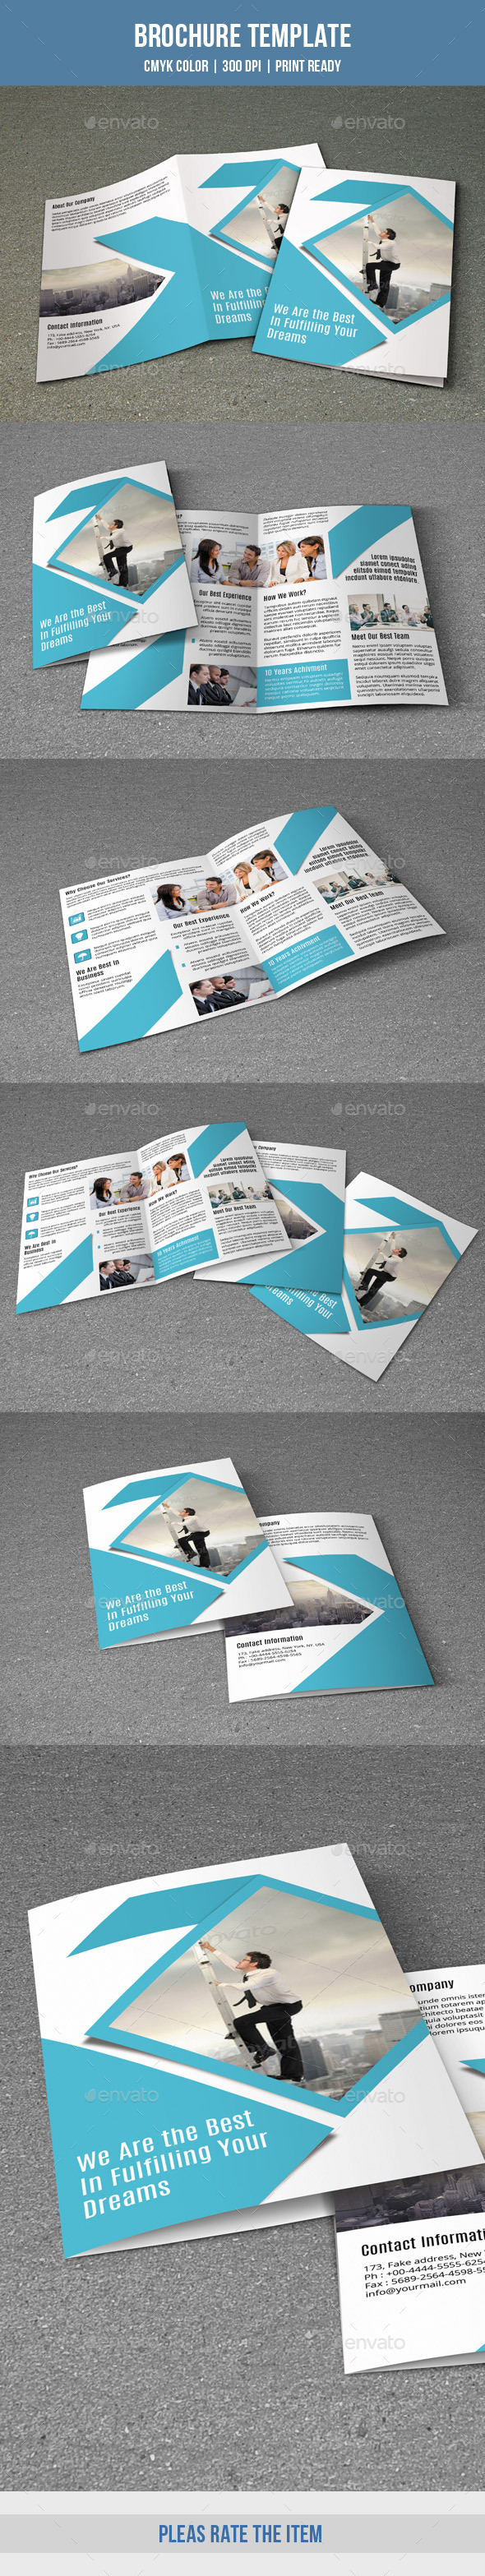 Corporate Bifold Brochure-V159 - Corporate Brochures